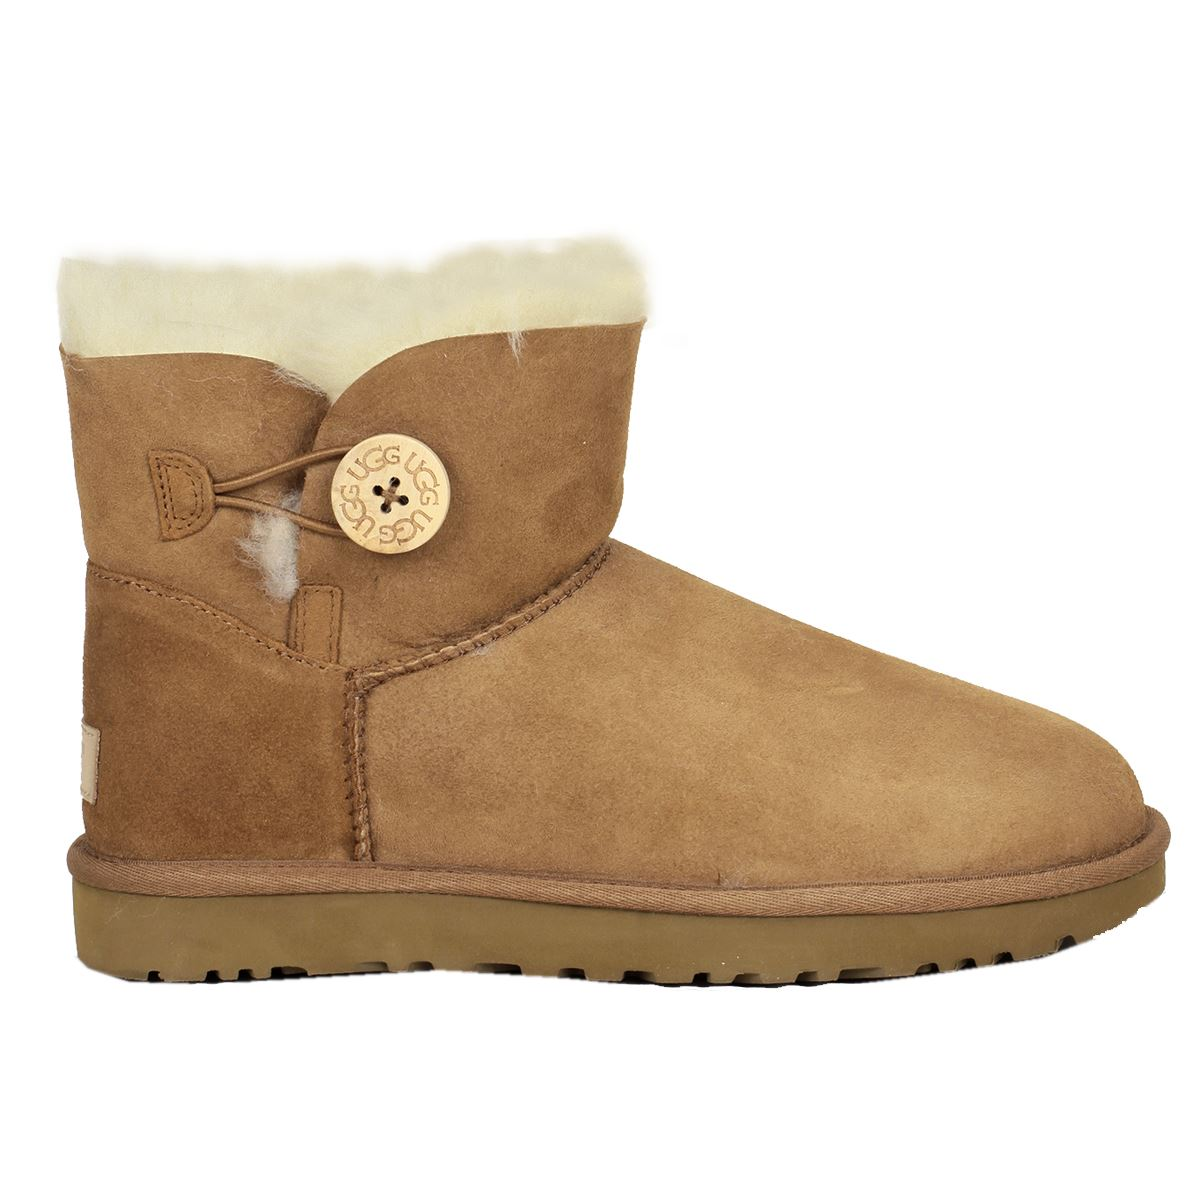 ugg australia mini bailey button chestnut